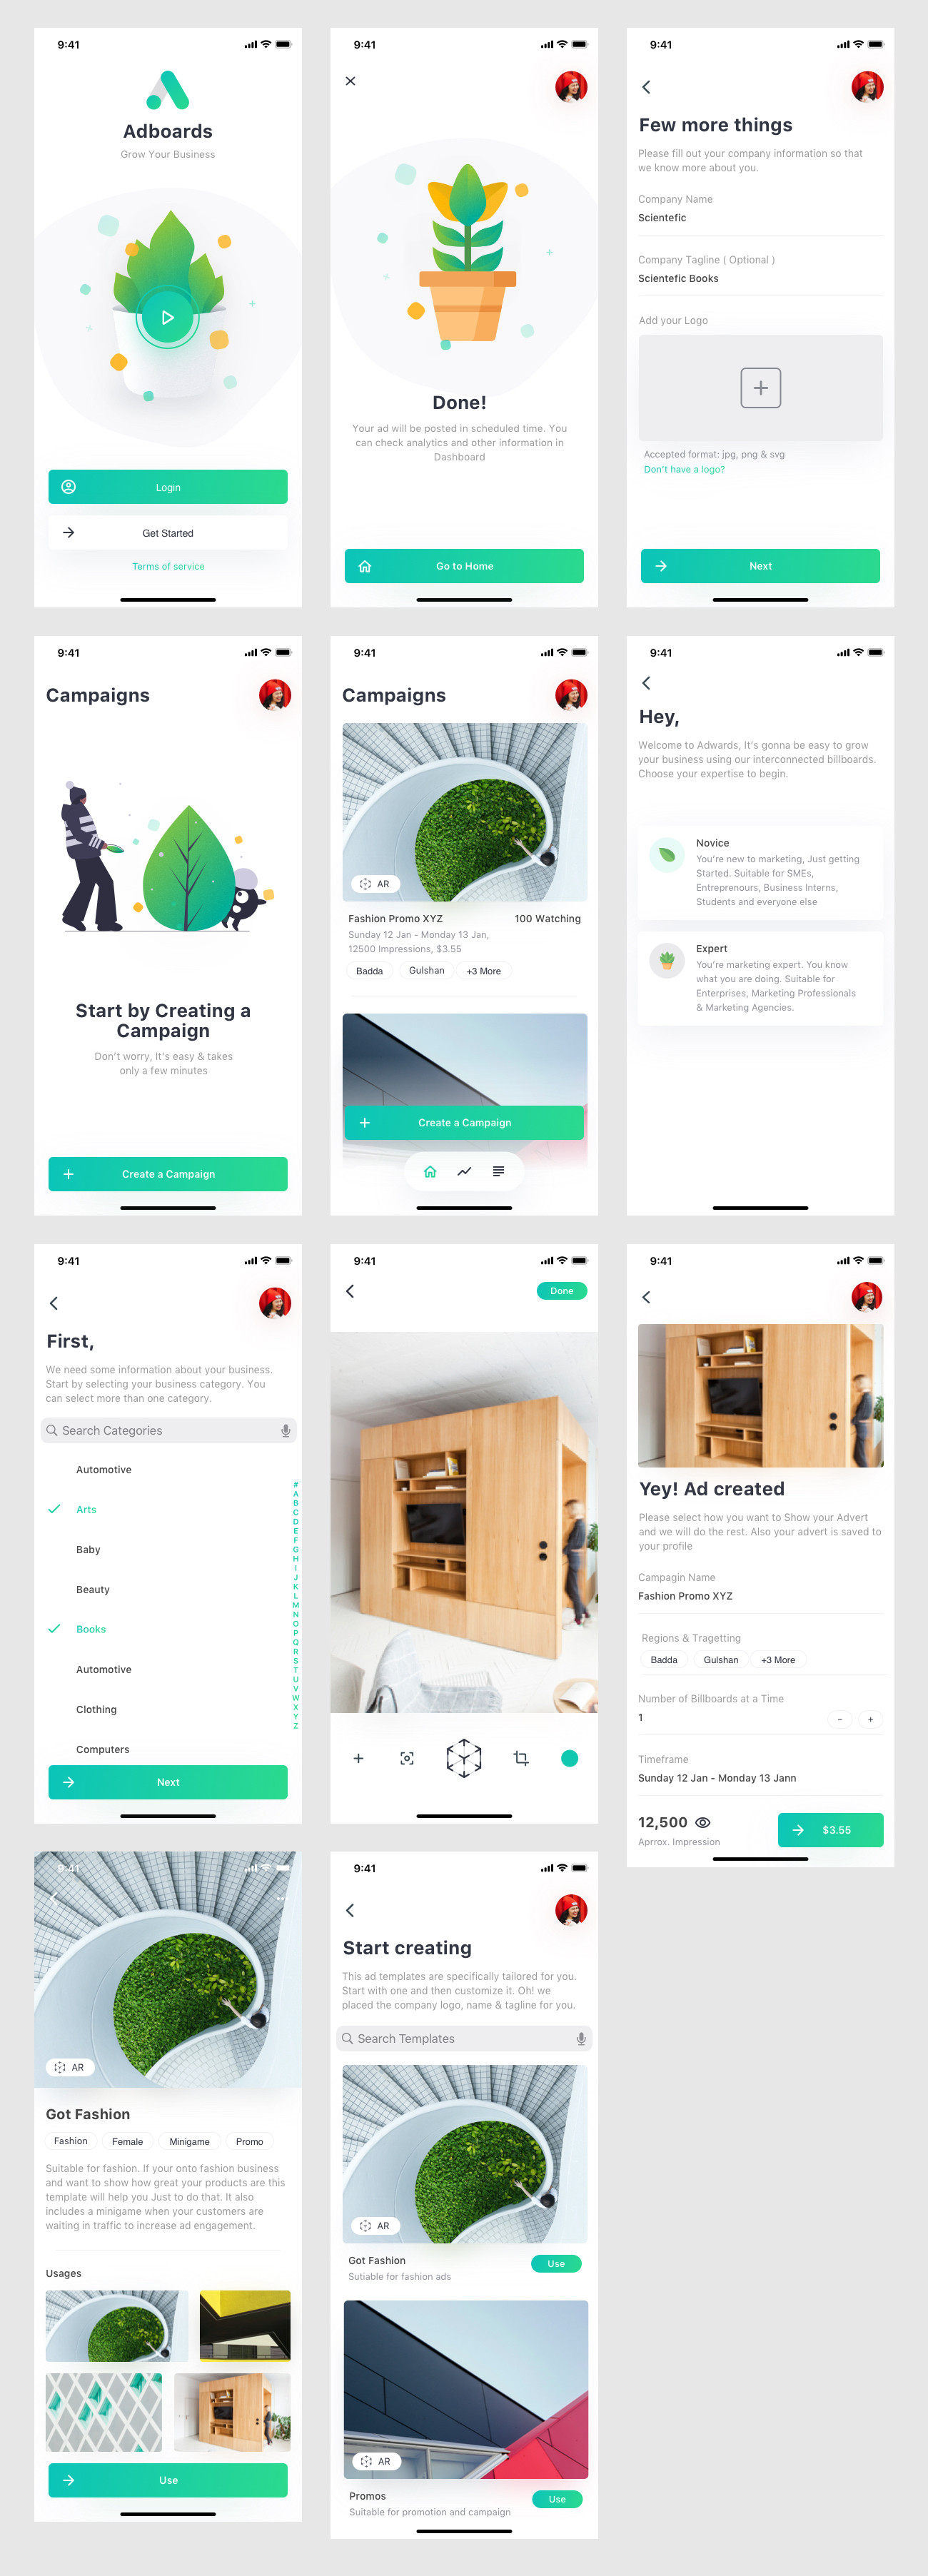 Adboards UI Kit for Sketch - Adboards is a concept project for posting ads to digital billboard concept for both novice and experts alike. Created a simple flow with AR view to check how your advert will look in the places. You can download the source sketch file for free. Minimal and clean app design, 11 screens for you to get started.